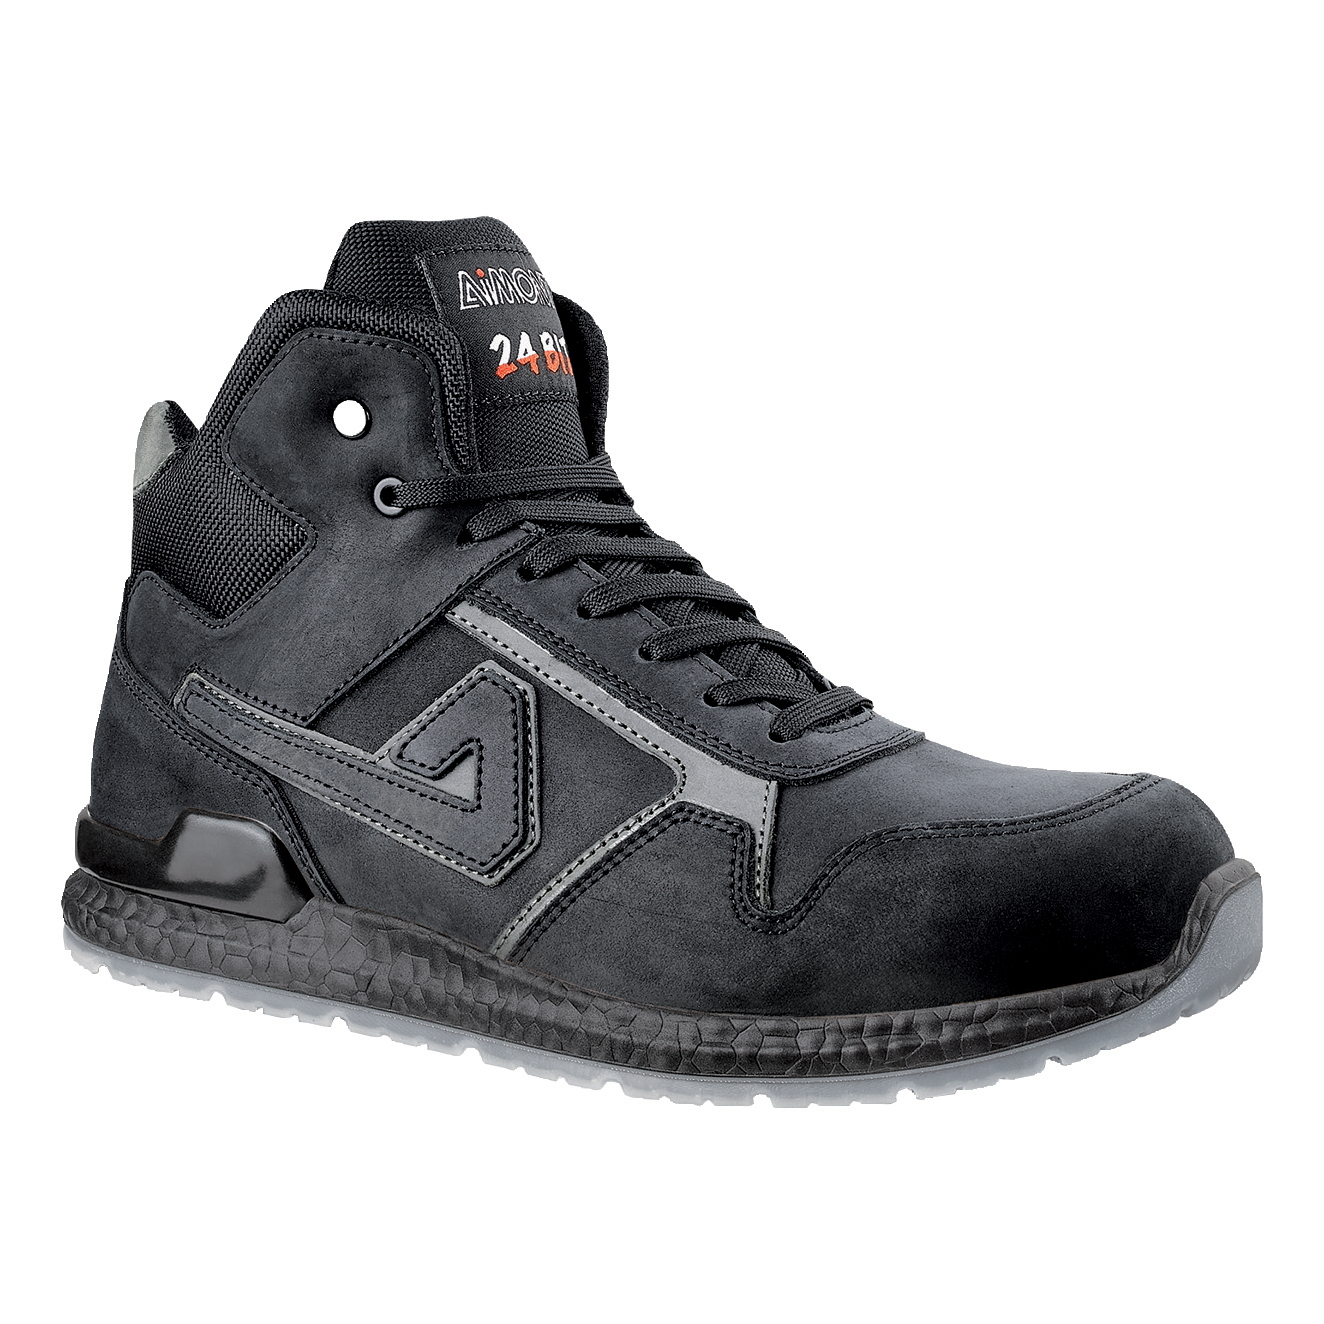 Aimont Kanye Safety Boots Protective Toecap Size 12 Black Ref AB10412 [Pair]